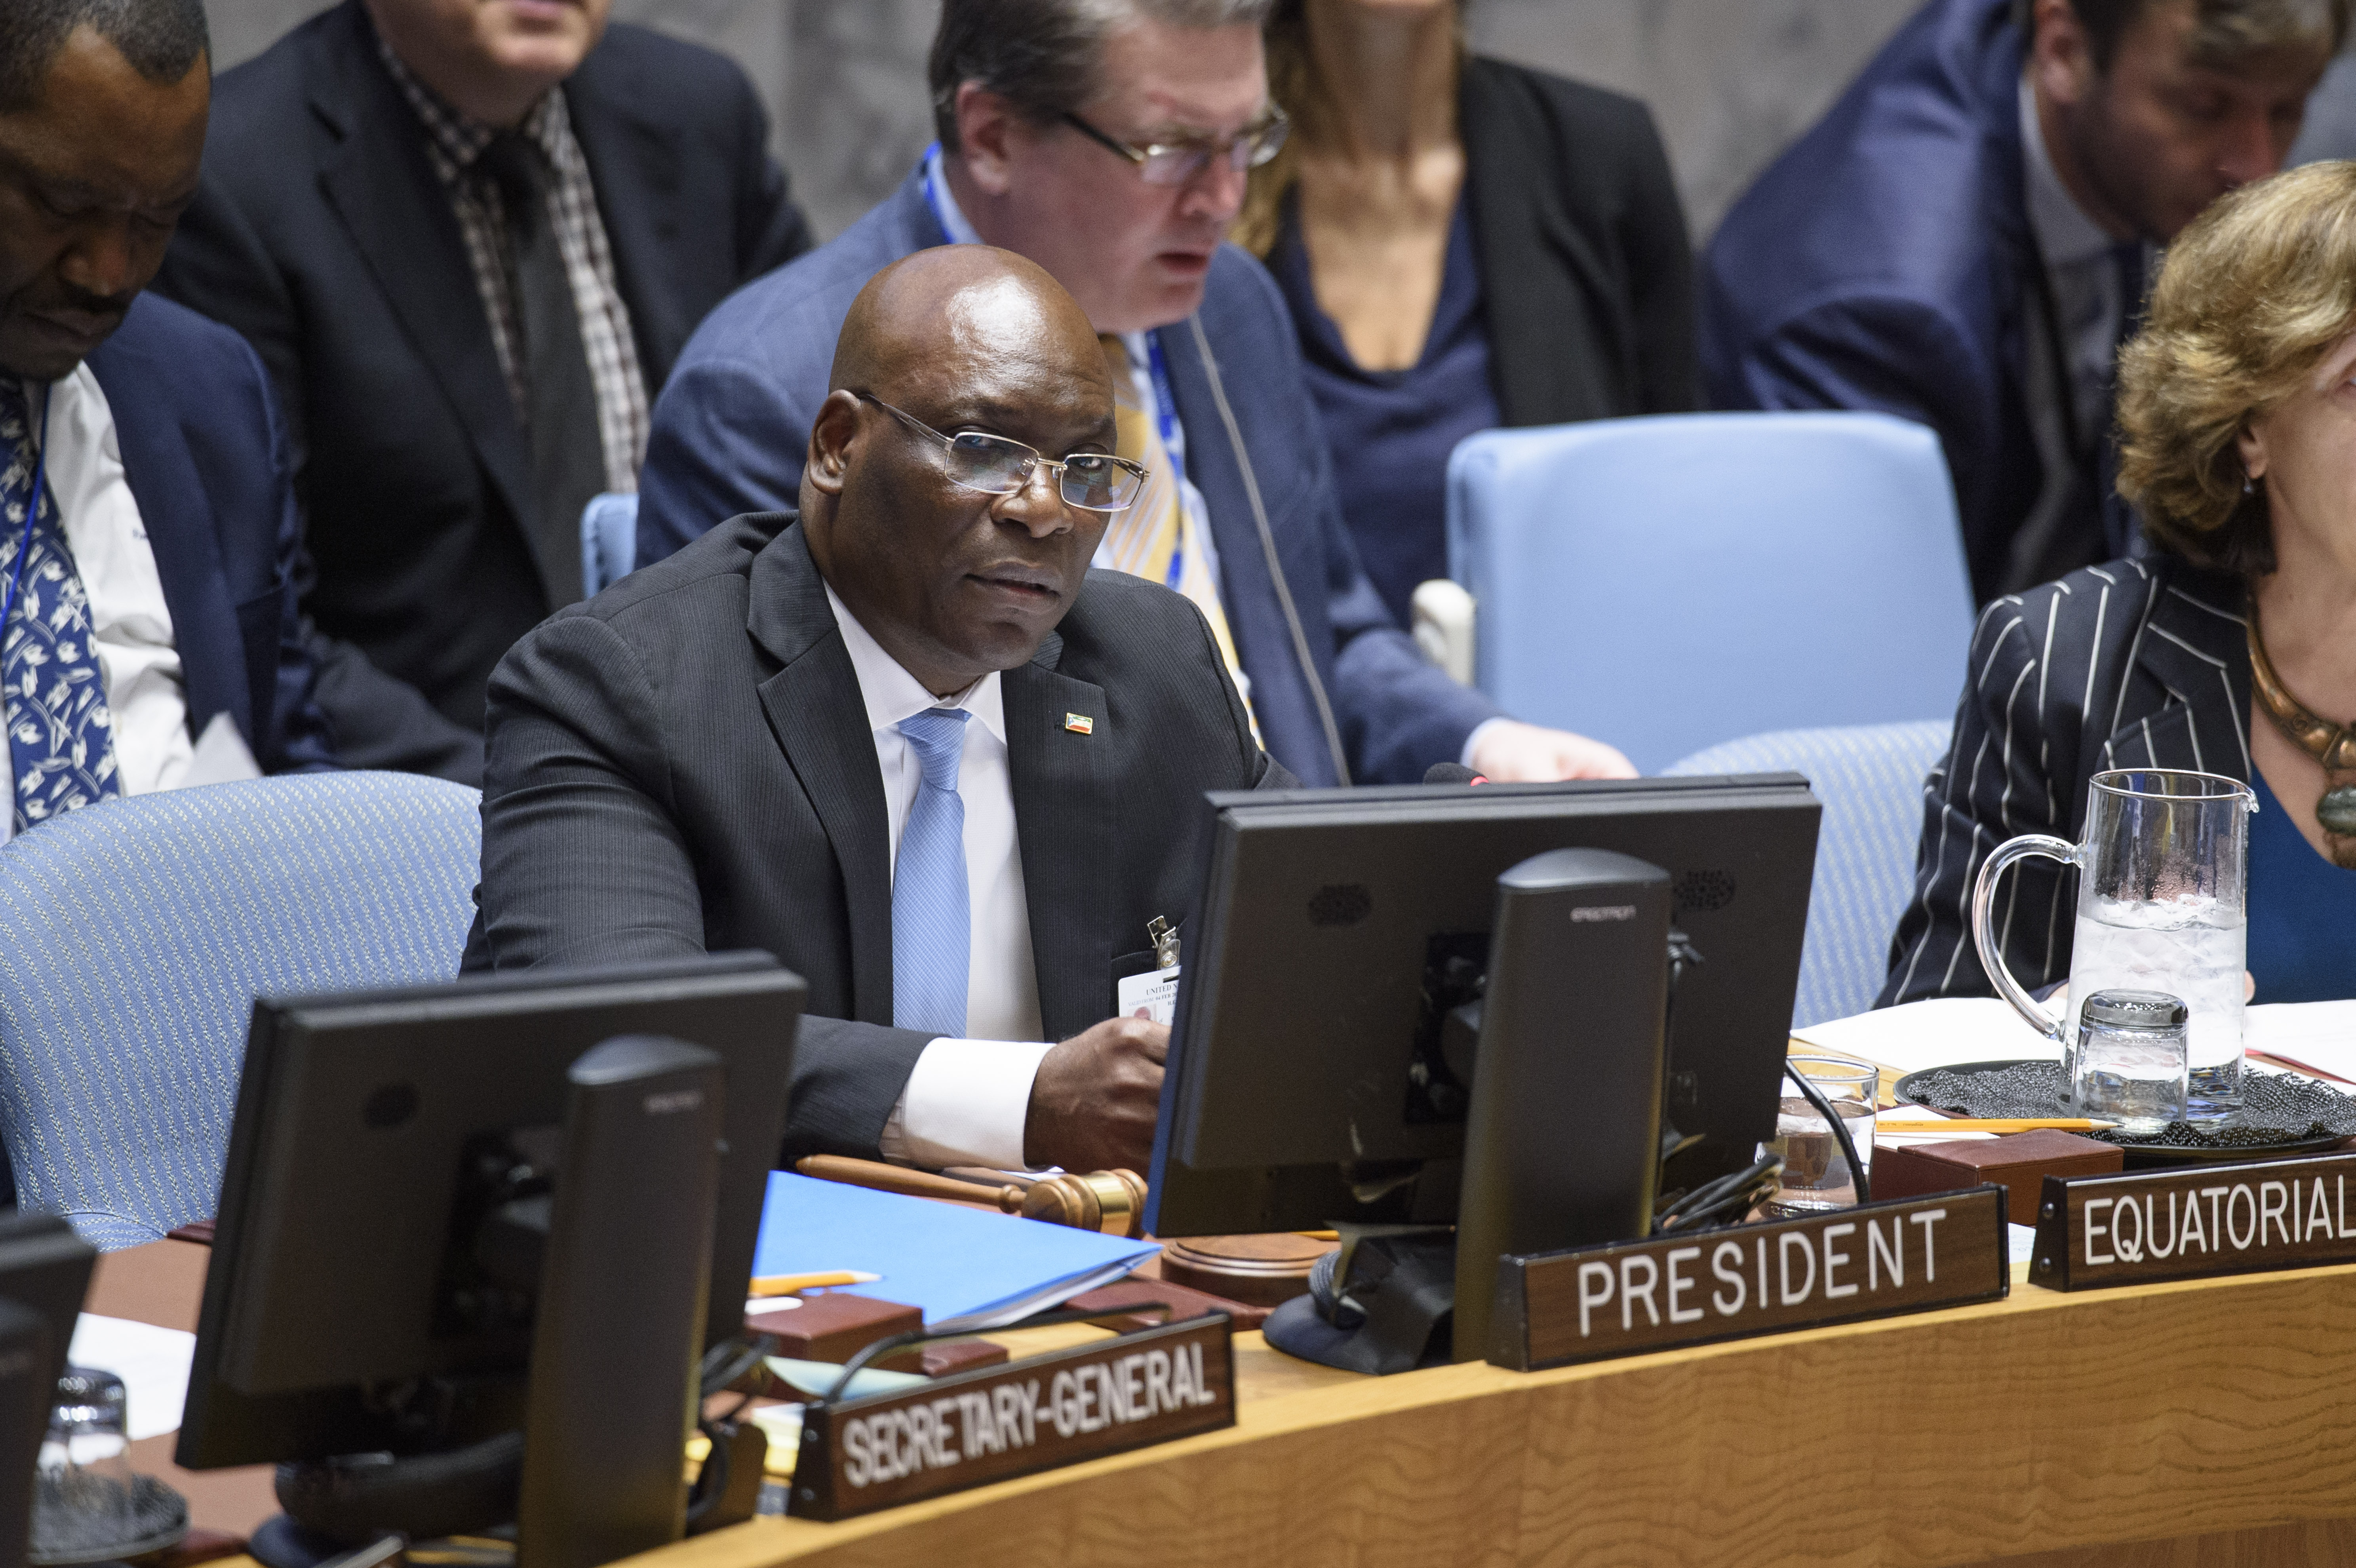 Simeon Oyono Esono Angue, Minister for Foreign Affairs and Cooperation of Equatorial Guinea and President of the Security Council for the month of February, chairs the Security Council meeting on the maintenance of international peace and security.